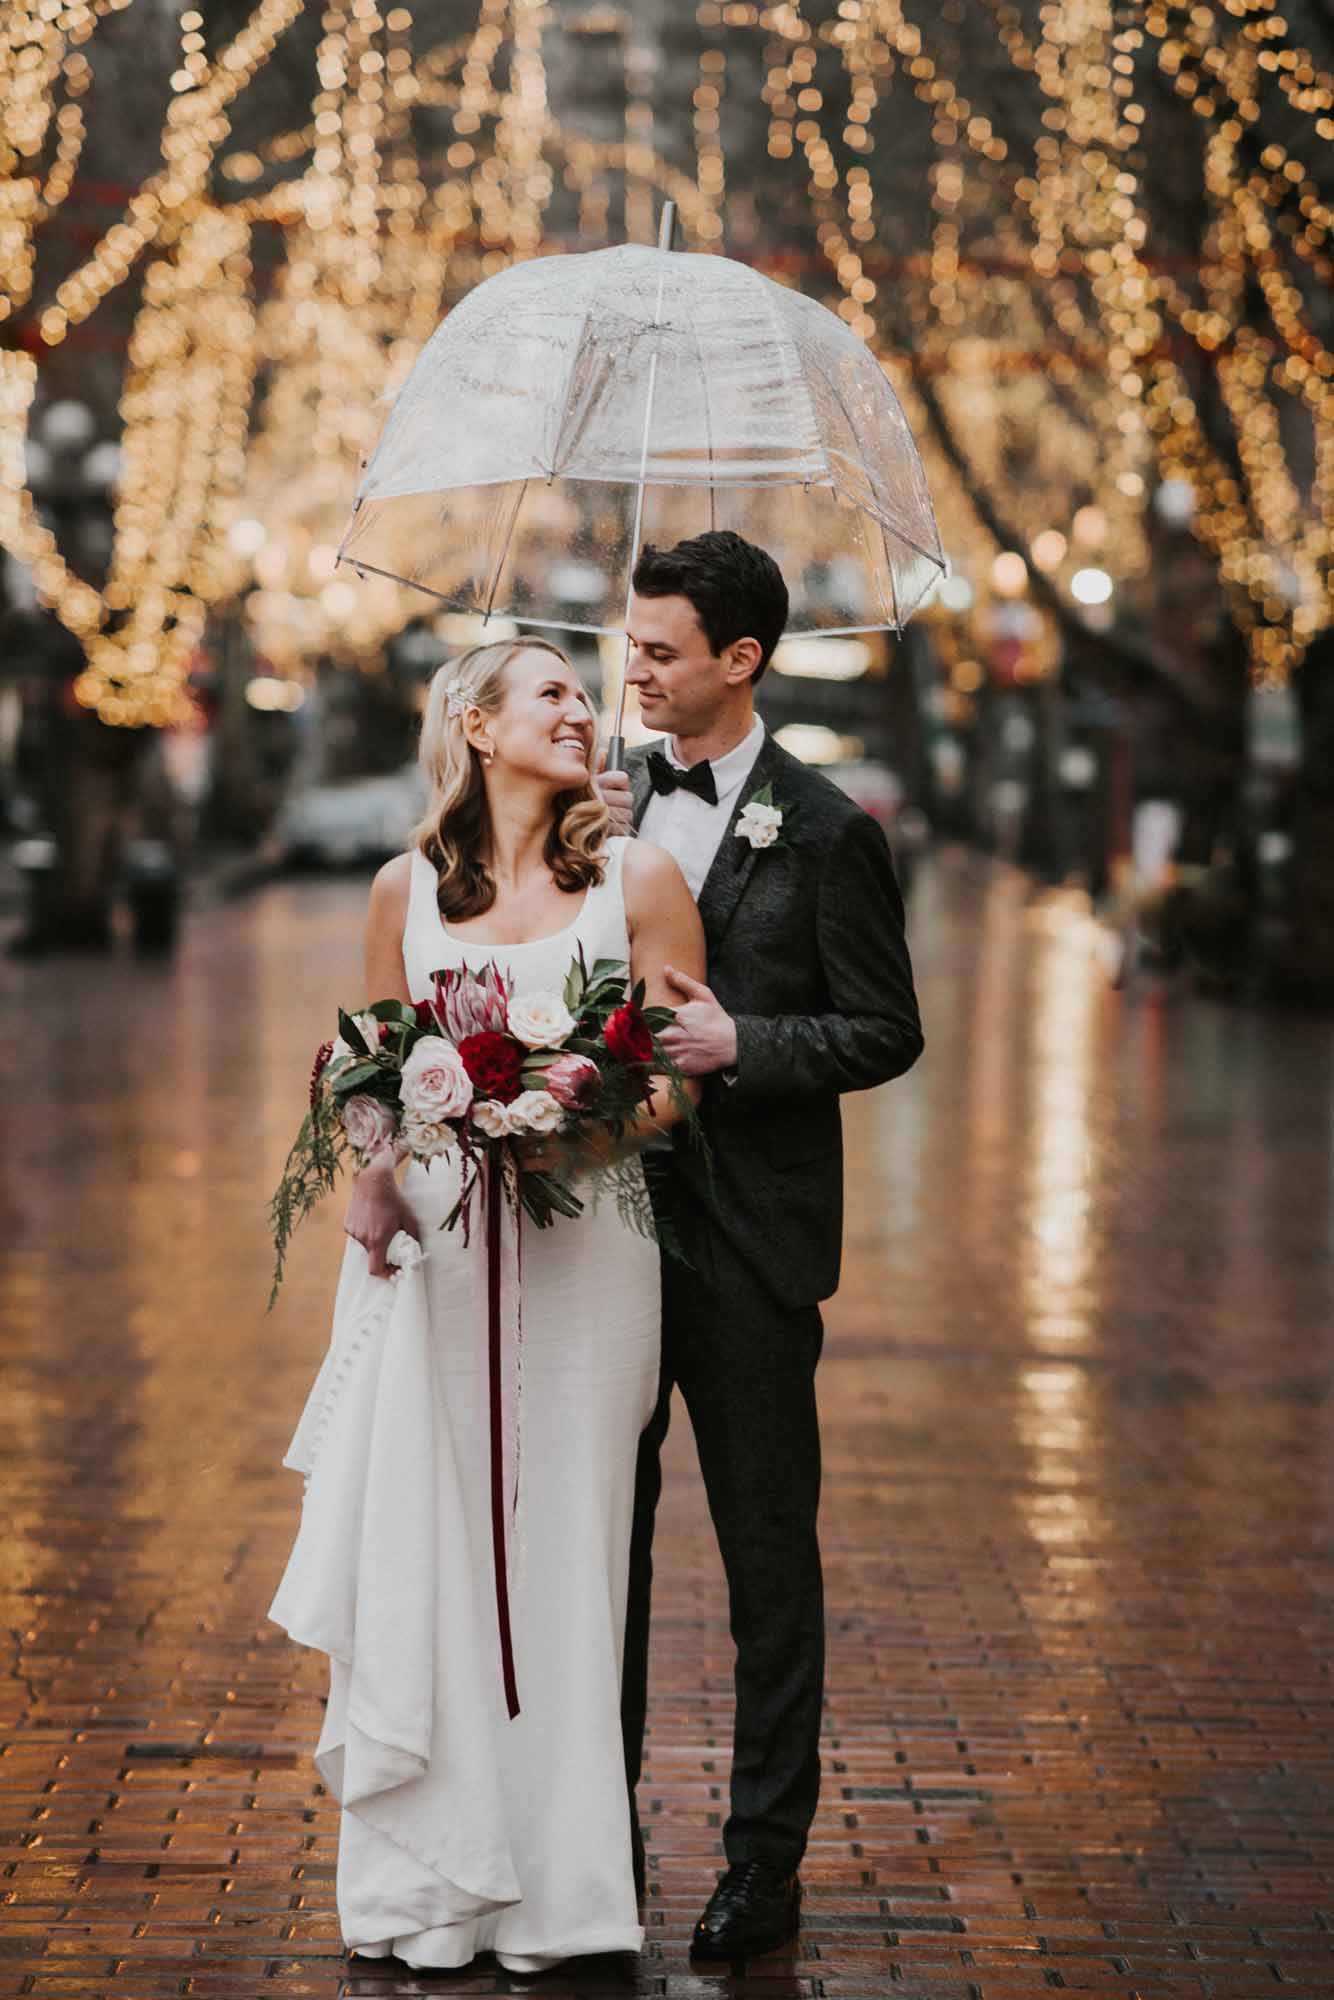 bride and groom under an umbrella with lighted trees behind